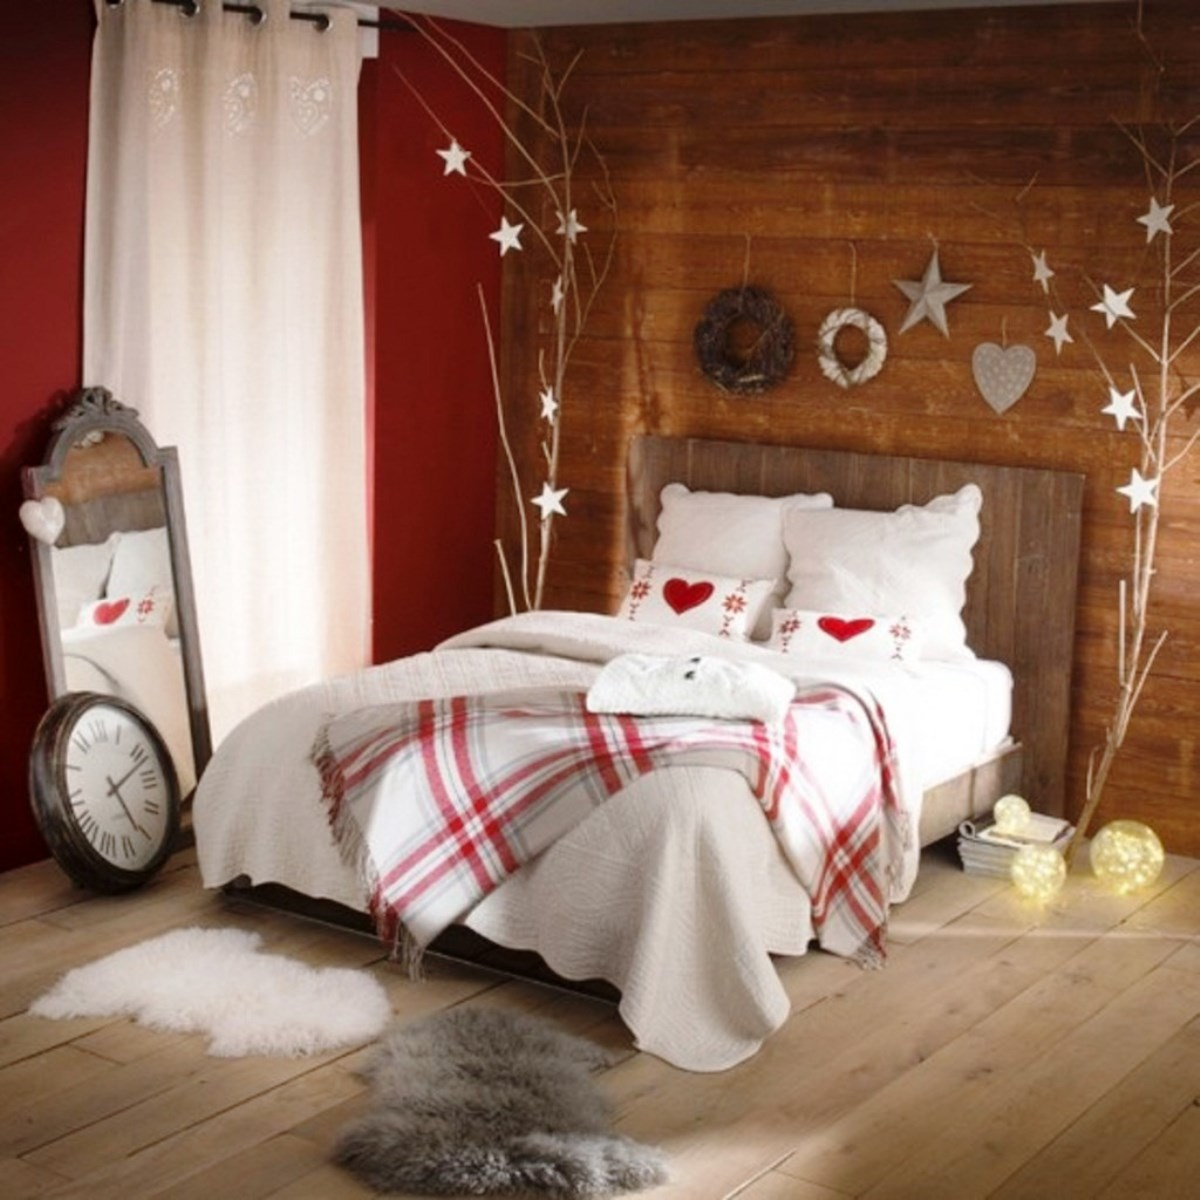 Interior Bedroom Decorations 30 christmas bedroom decorations ideas decor ideas